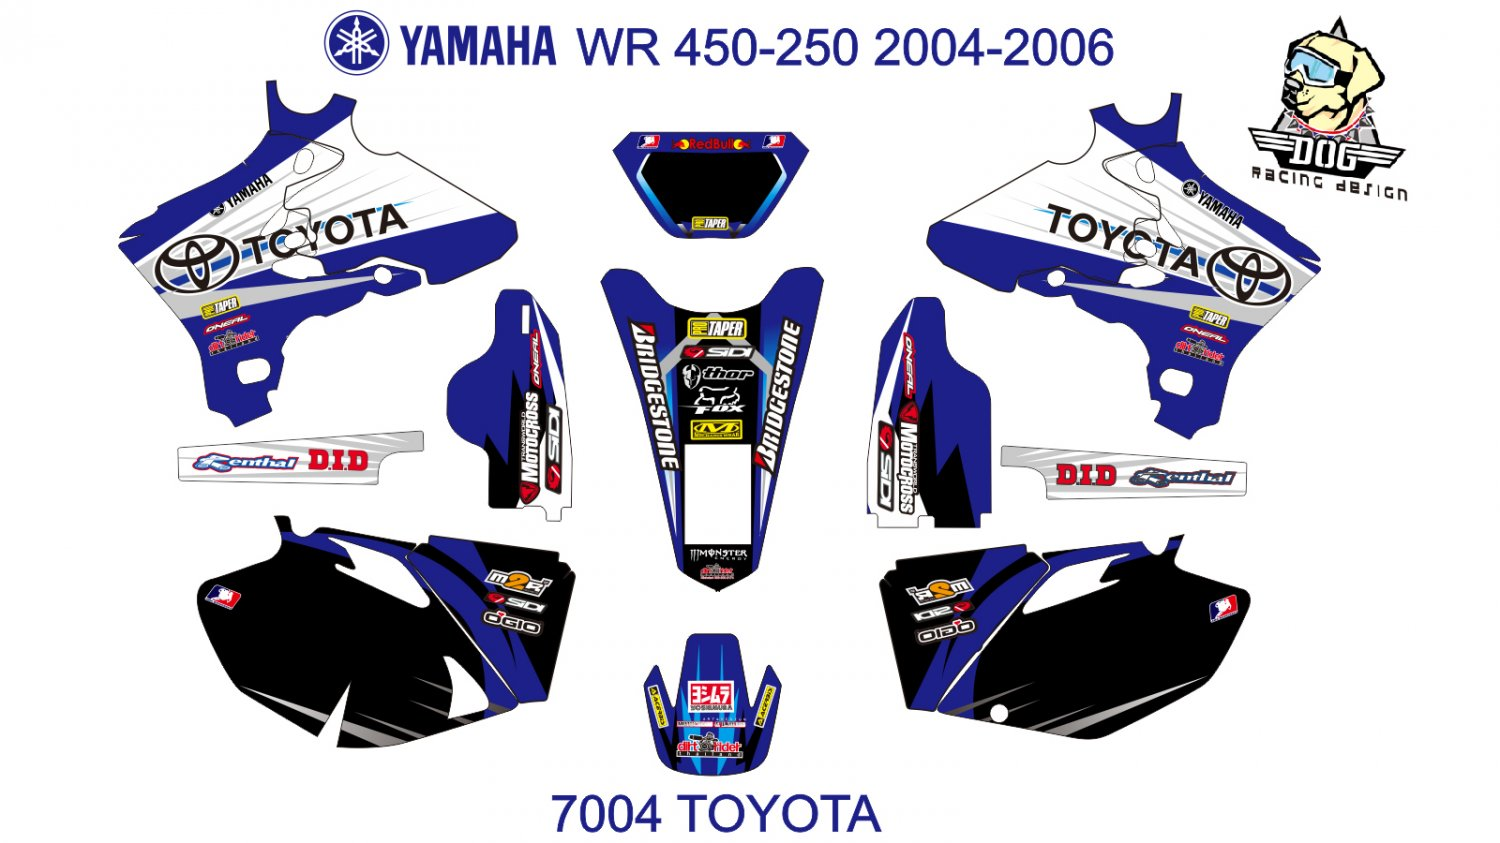 YAMAHA WR 450-250 2004-2006 GRAPHIC DECAL KIT CODE.7004